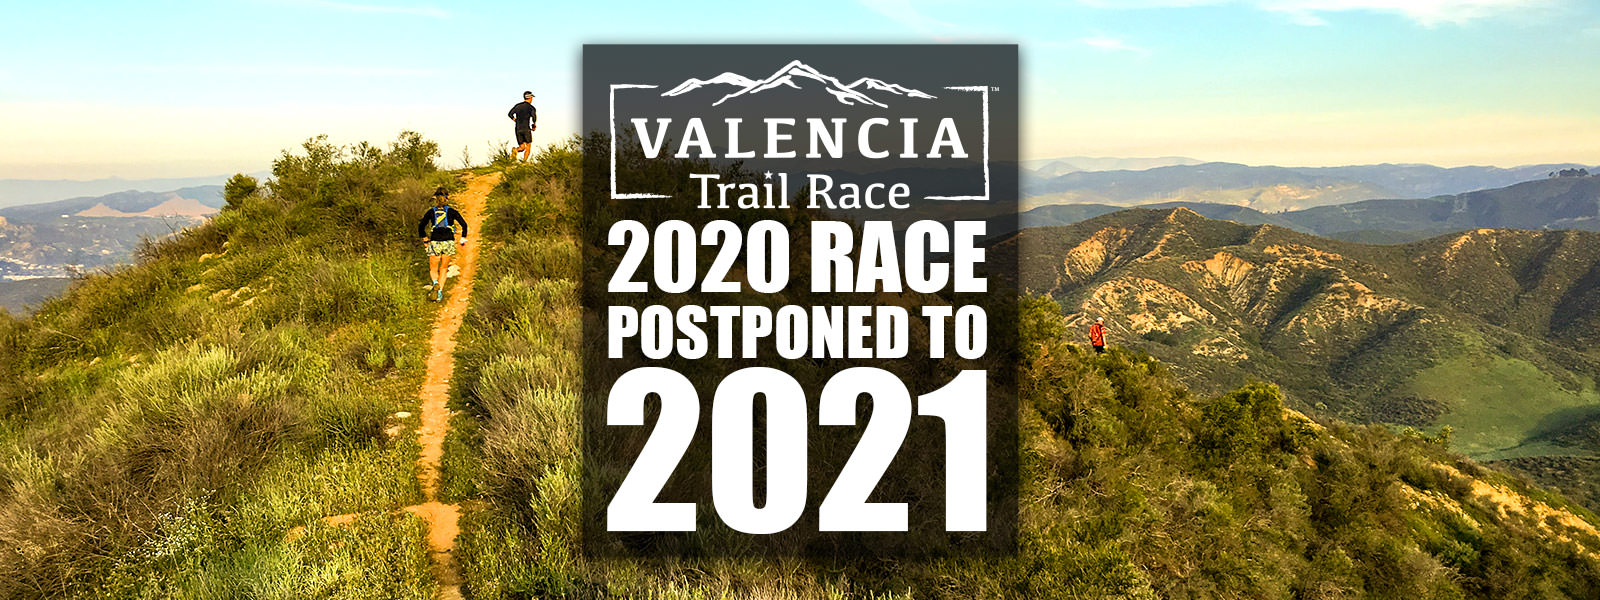 2020 RACE POSTPONED TO 2021